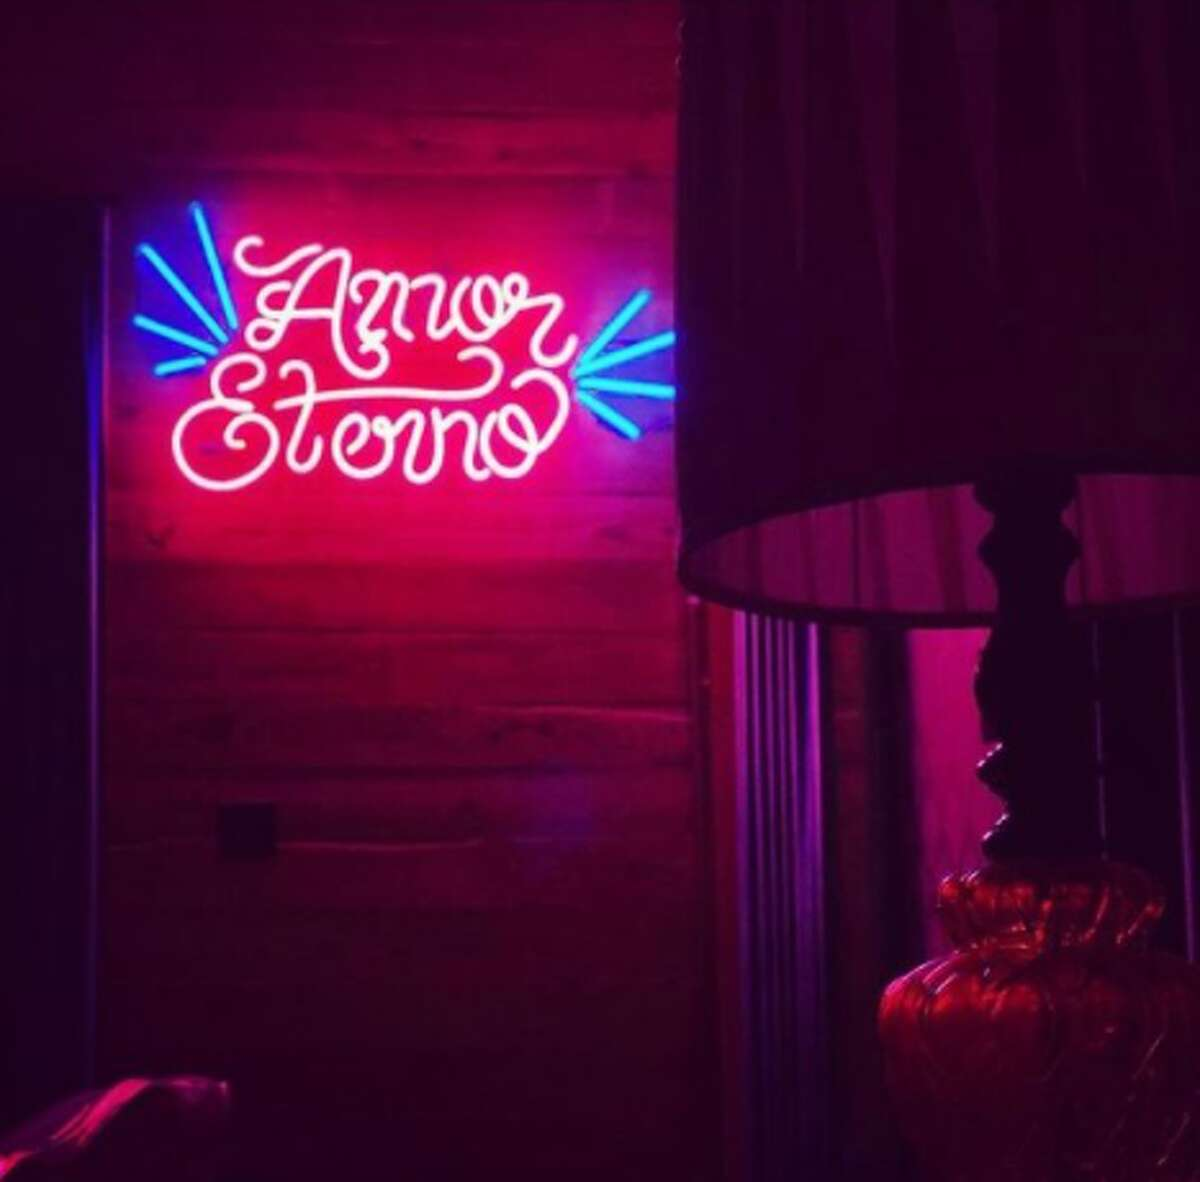 Amor Eterno, Southtown's newest spot, is preparing to pop open with the new year.